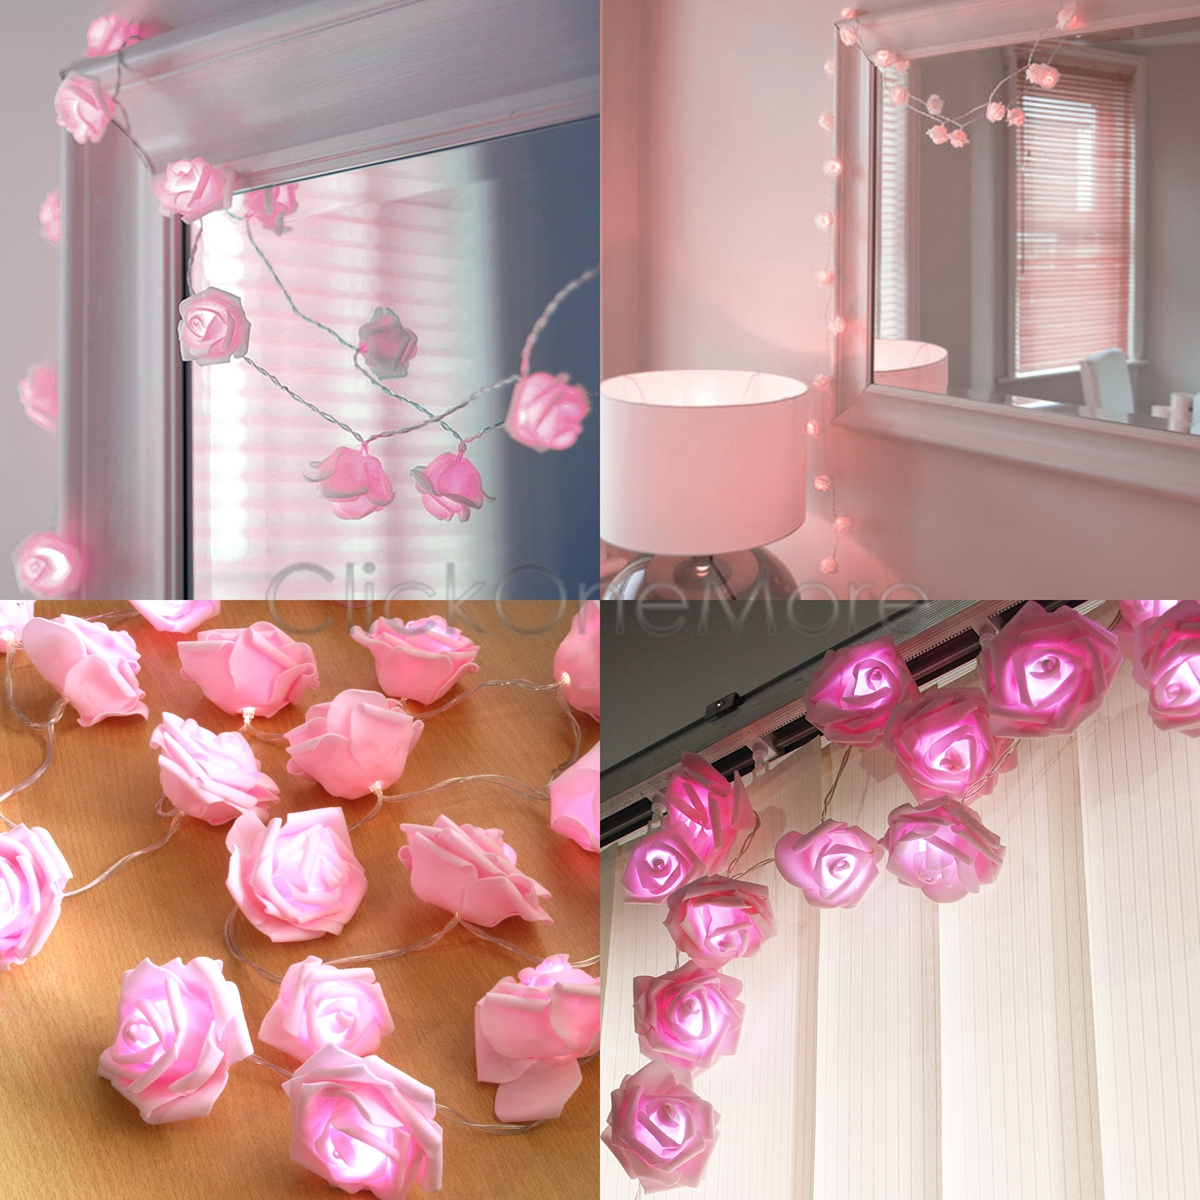 sai 20 led pink rose flower battery operated fairy light